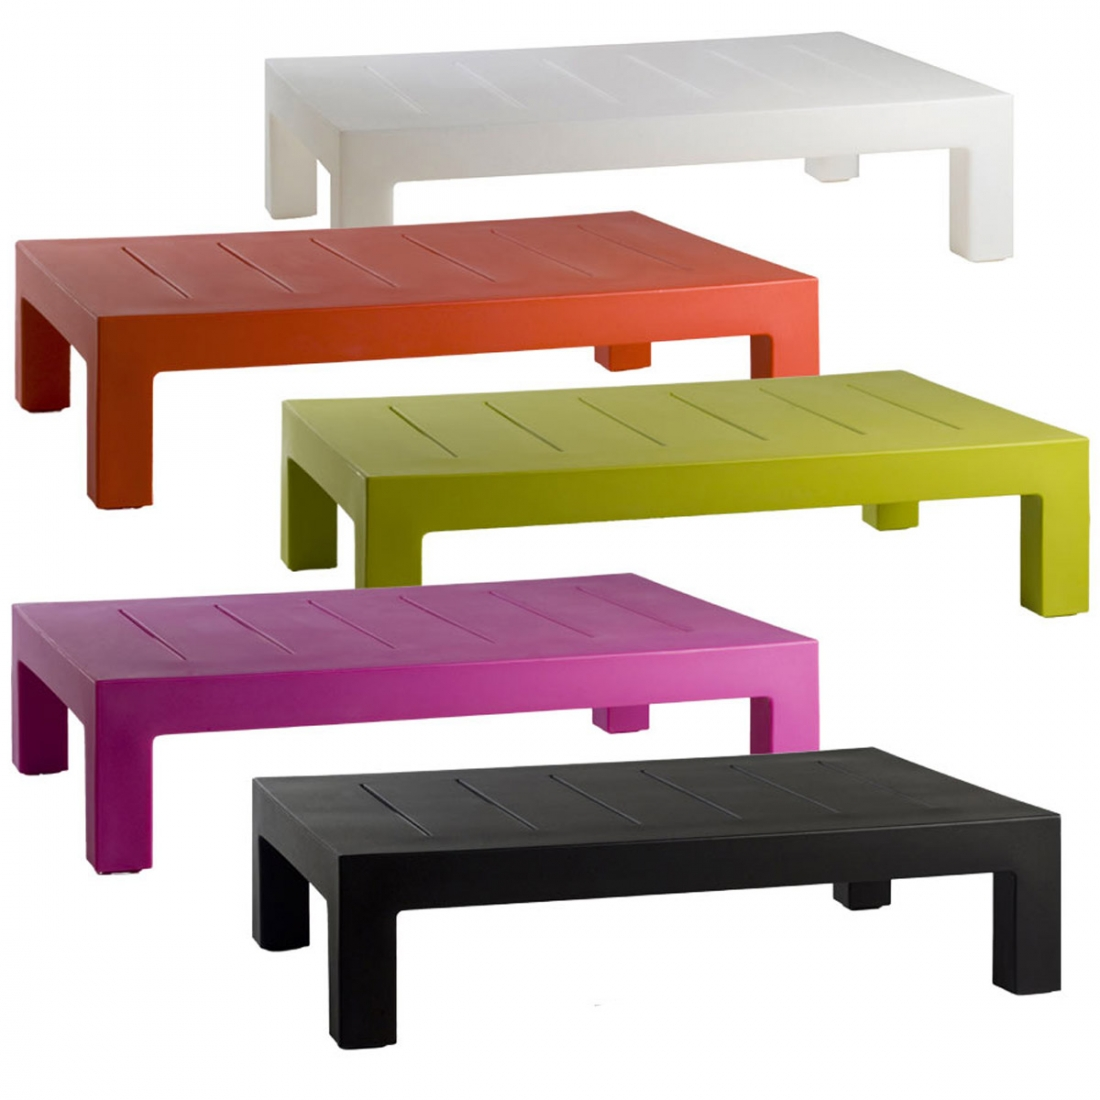 table basse design d ext rieur jut par vondom